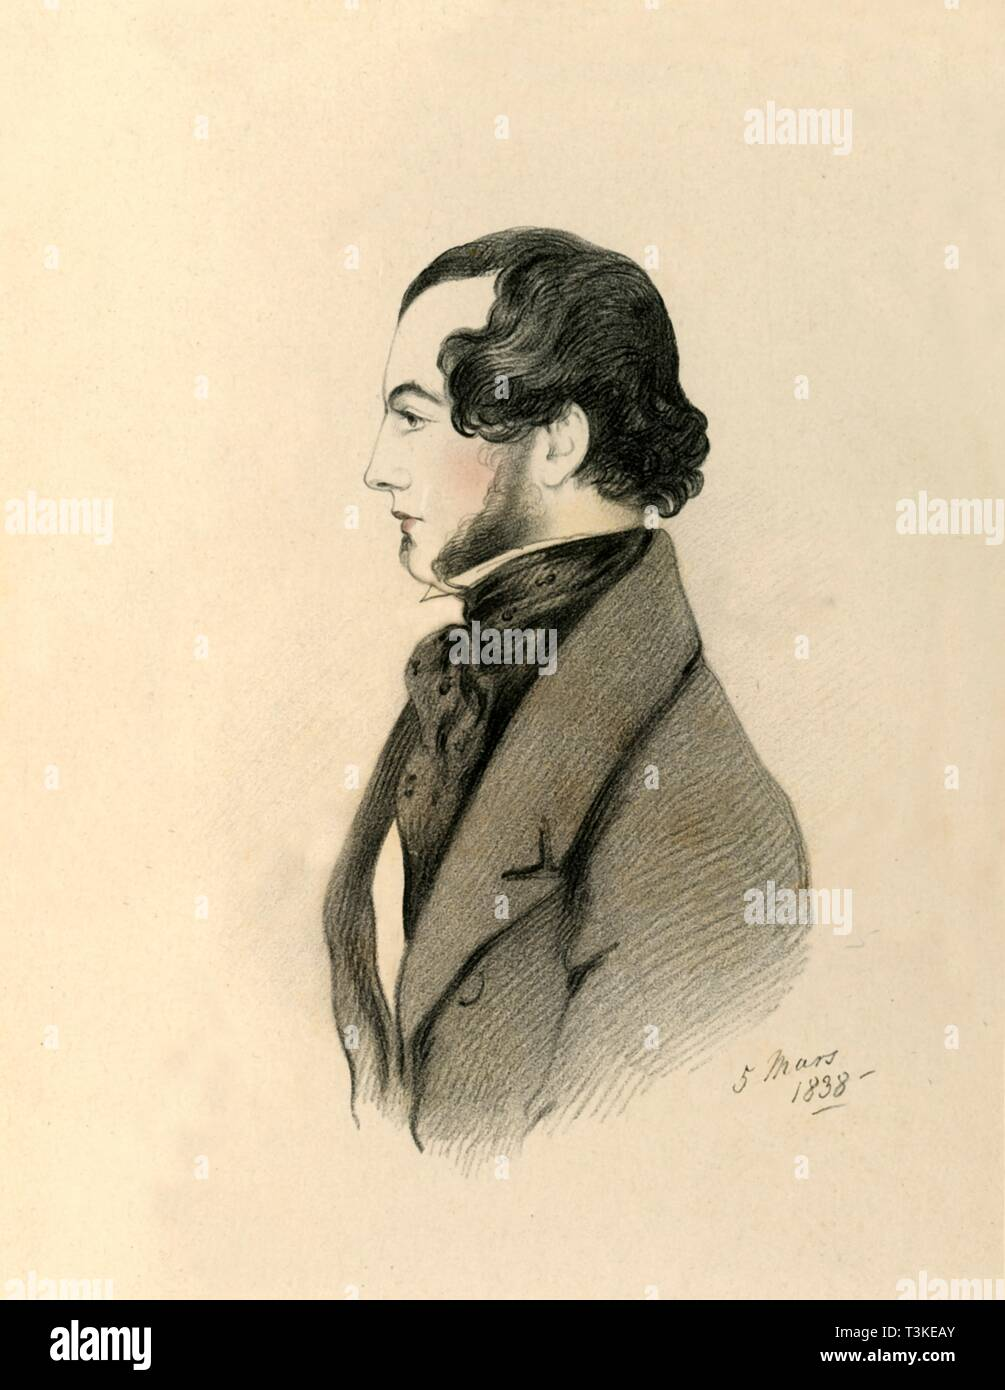 """'J Home Purves', 1838. Portrait of John Home Purves (c1816-1867), Colonel and Equerry and Comptroller of the Household to the Duchess of Cambridge, nephew of Lady Blessington. From """"Portraits by Count D'Orsay"""", an album assembled by Lady Georgiana Codrington. [1850s] - Stock Image"""